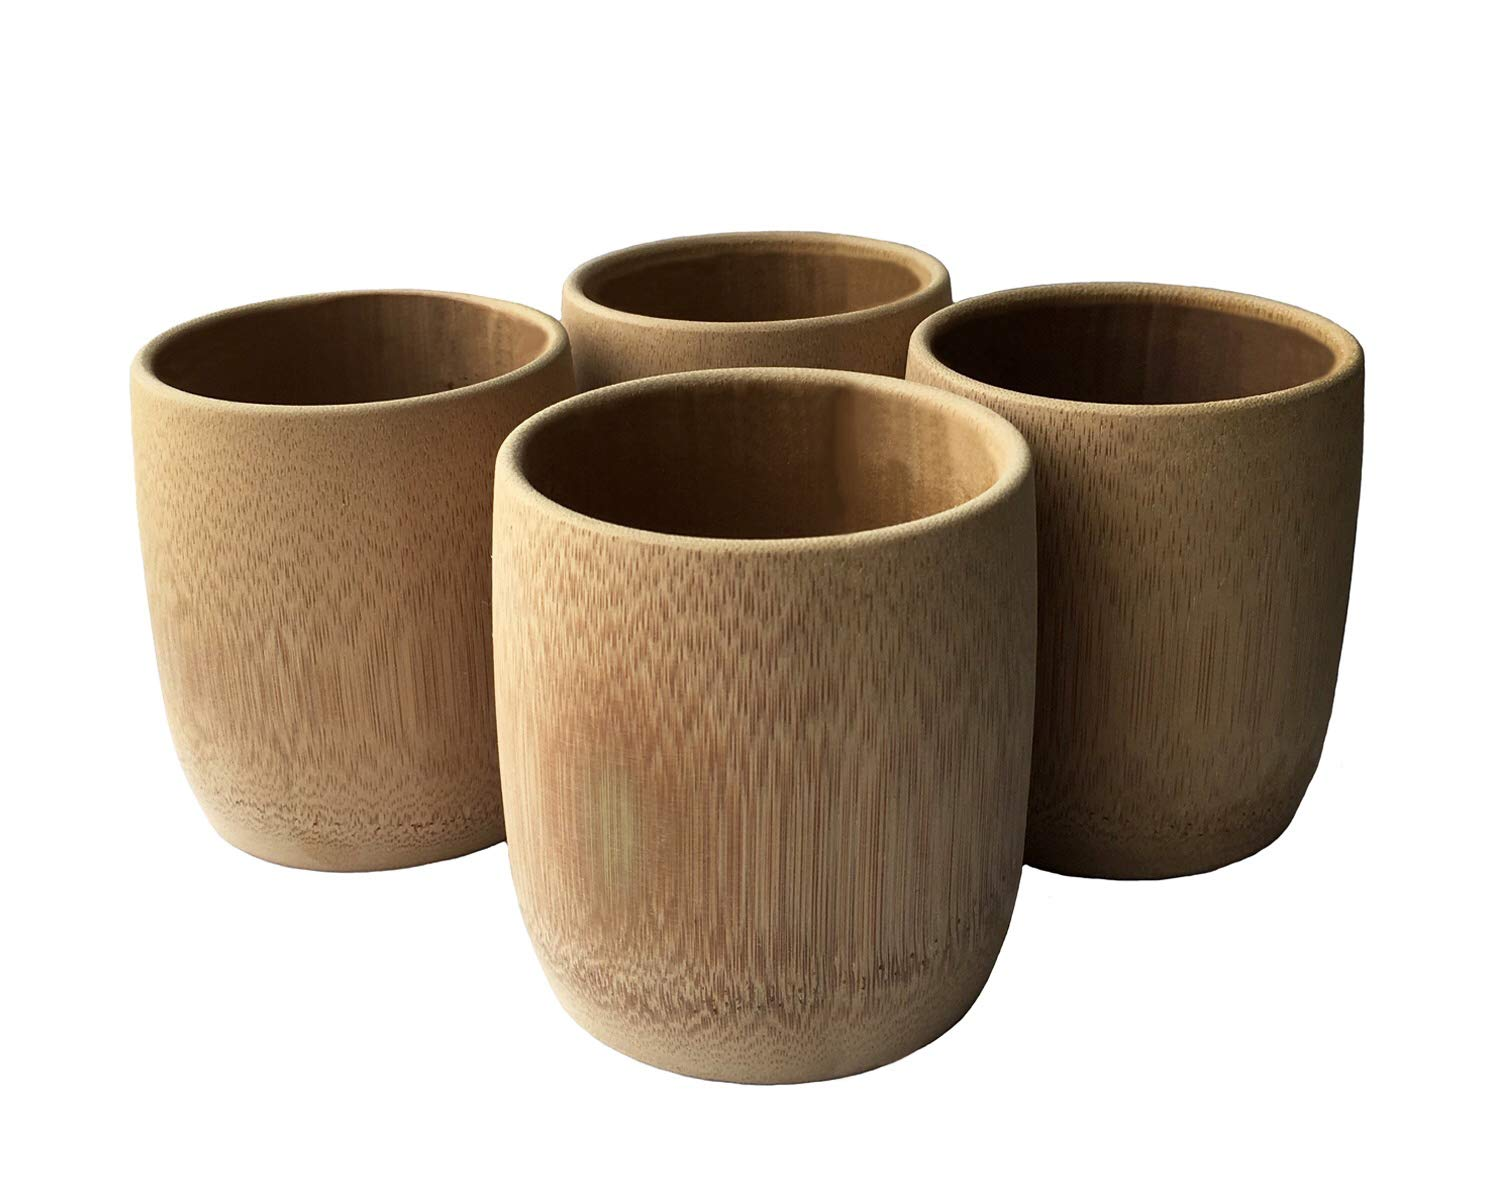 KCHAIN 4pcs Drinking Cups for Sake Coffee Tea (200mL Bamboo cups)